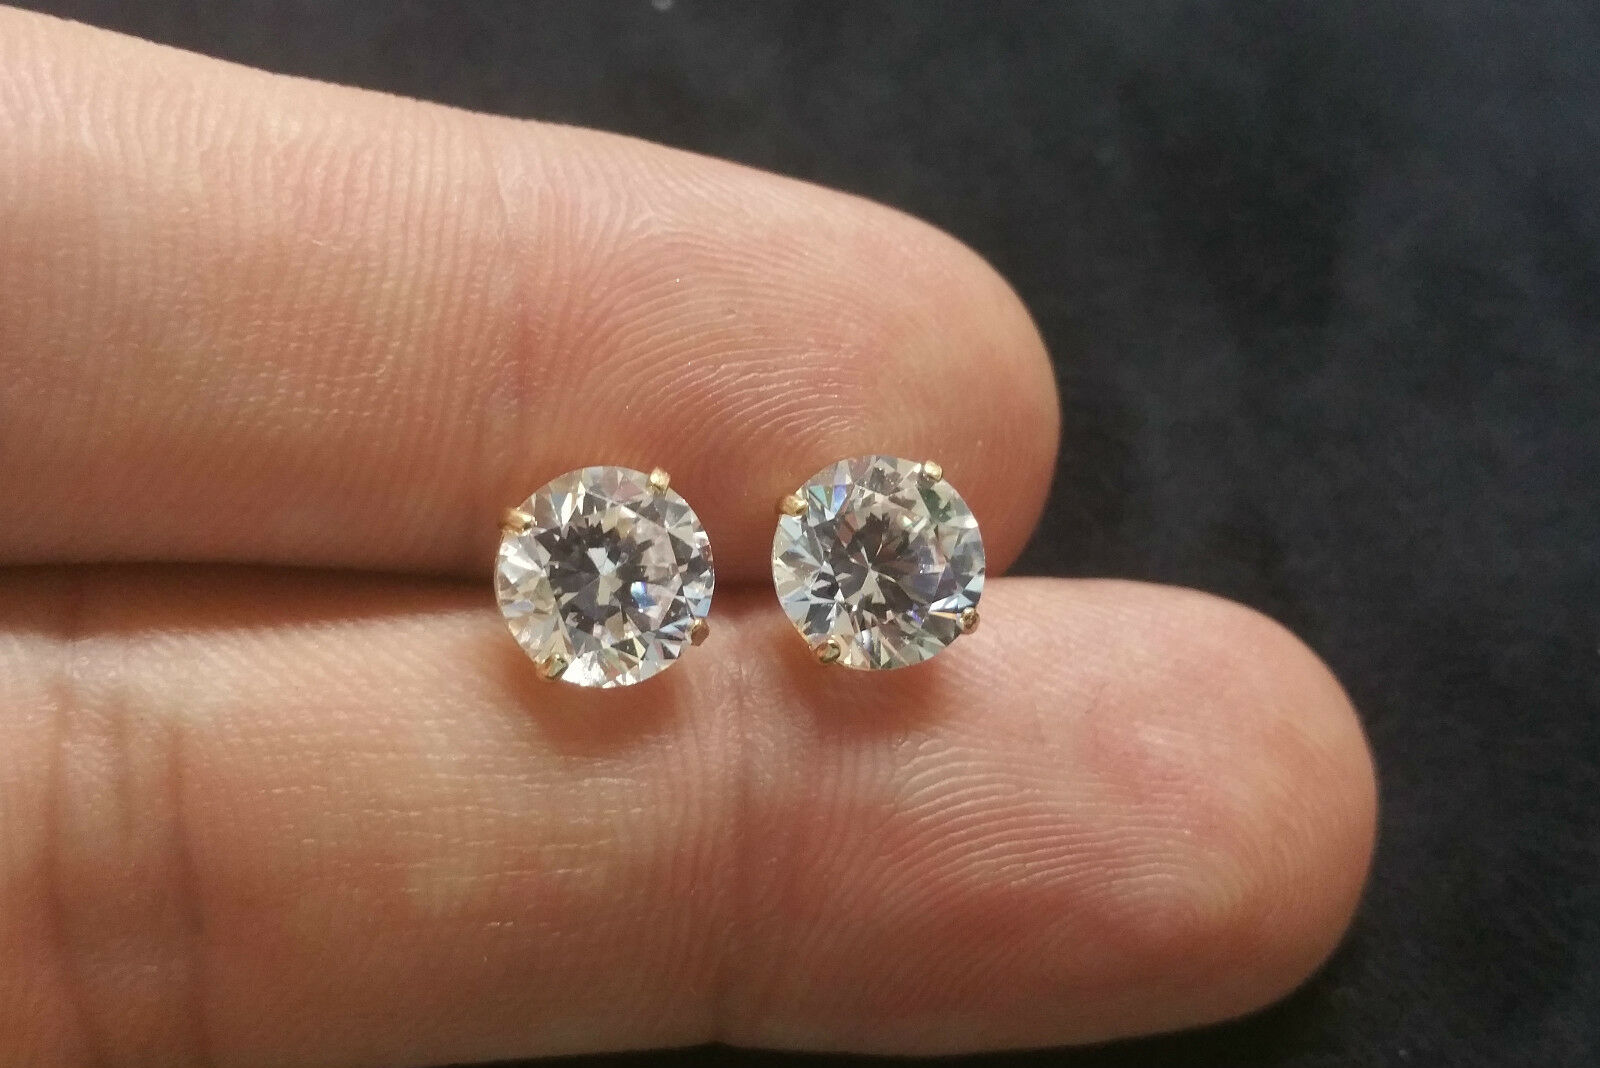 Brilliant Solitaire Man Made Diamond Earrings 5 5ct 14k Yellow Gold Studs 1 Of 4only Available